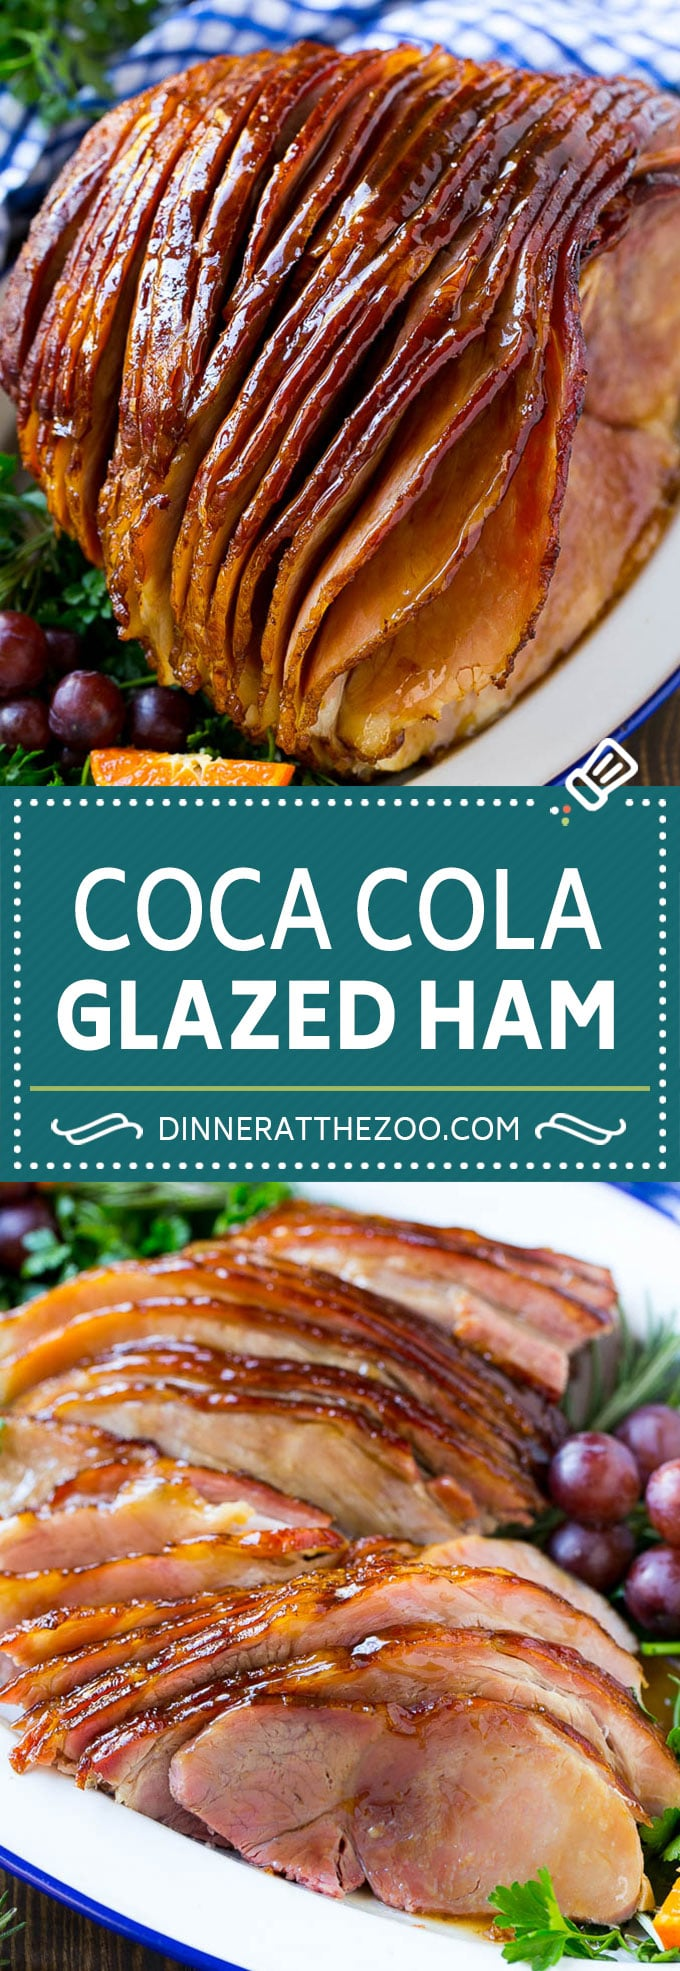 Coca Cola Ham | Coke Glazed Ham | Easter Ham | Christmas Ham | Holiday Ham Recipe #ham #easter #christmas #dinner #dinneratthezoo